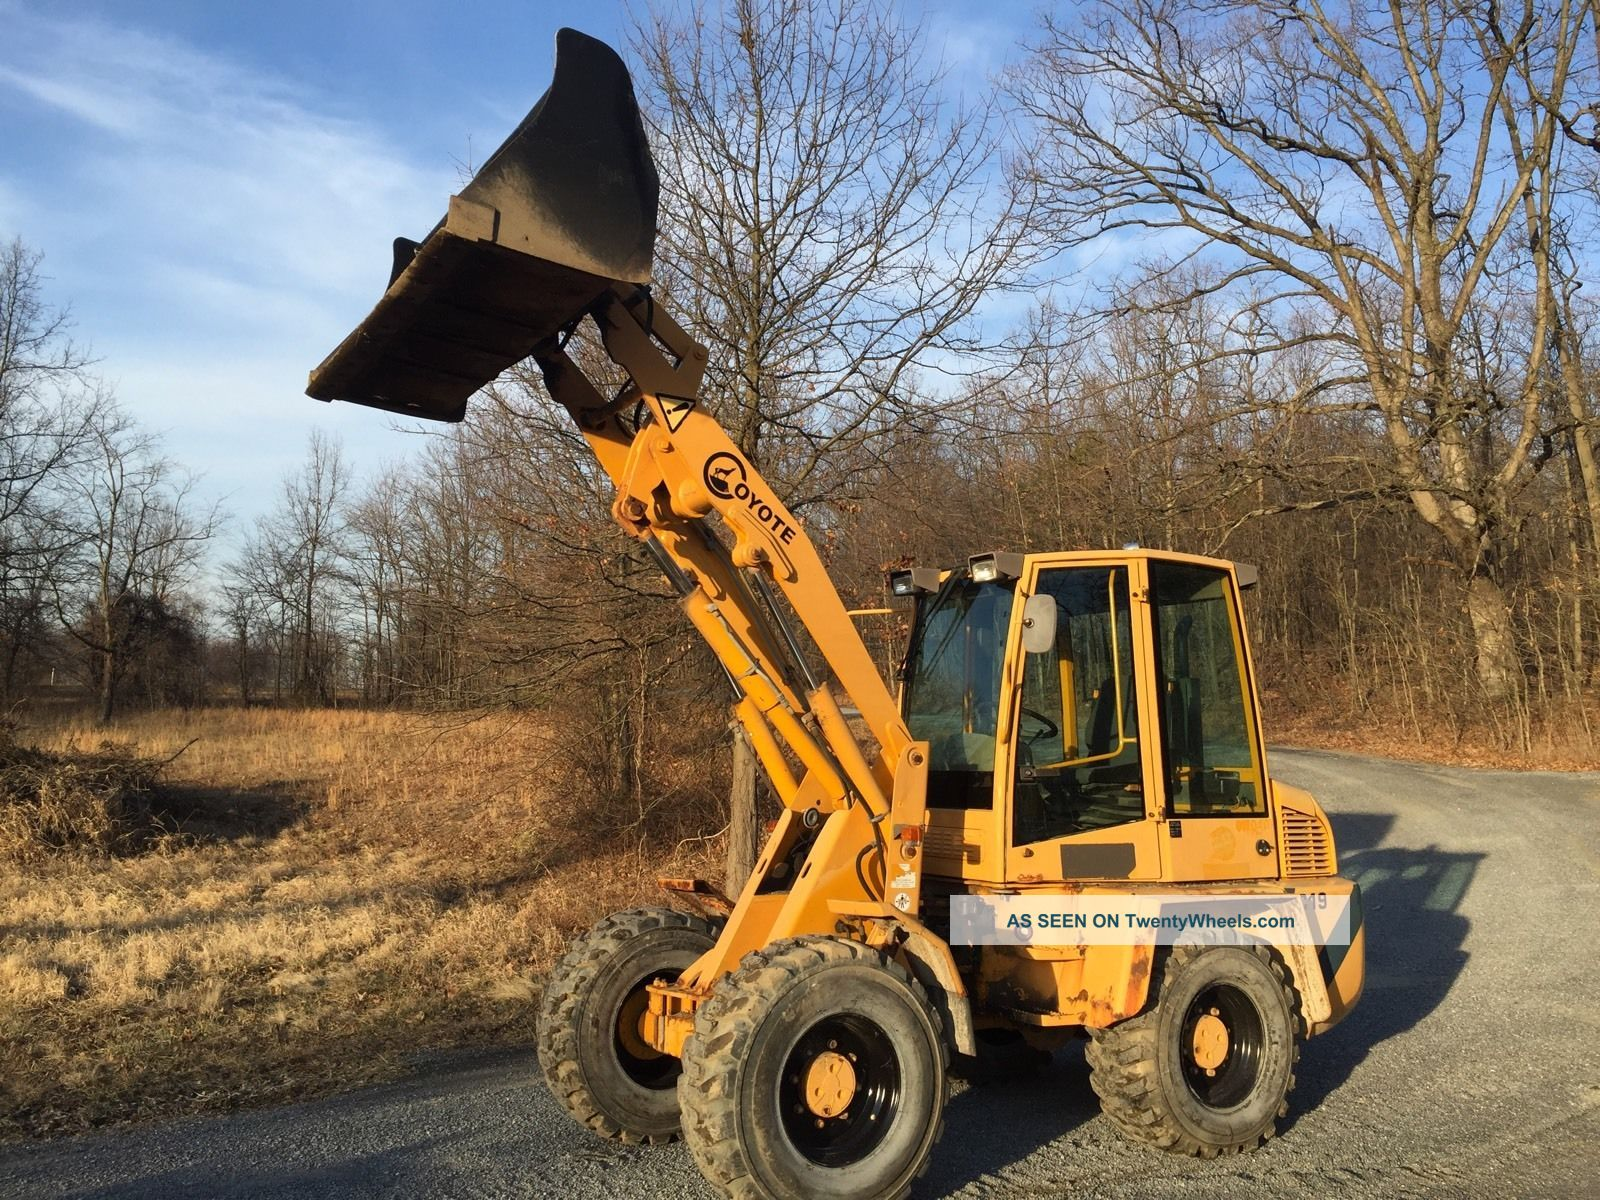 Coyote C19 Wheel Loader,  Enclosed Cab,  70 Hp Great For Snow Wheel Loaders photo